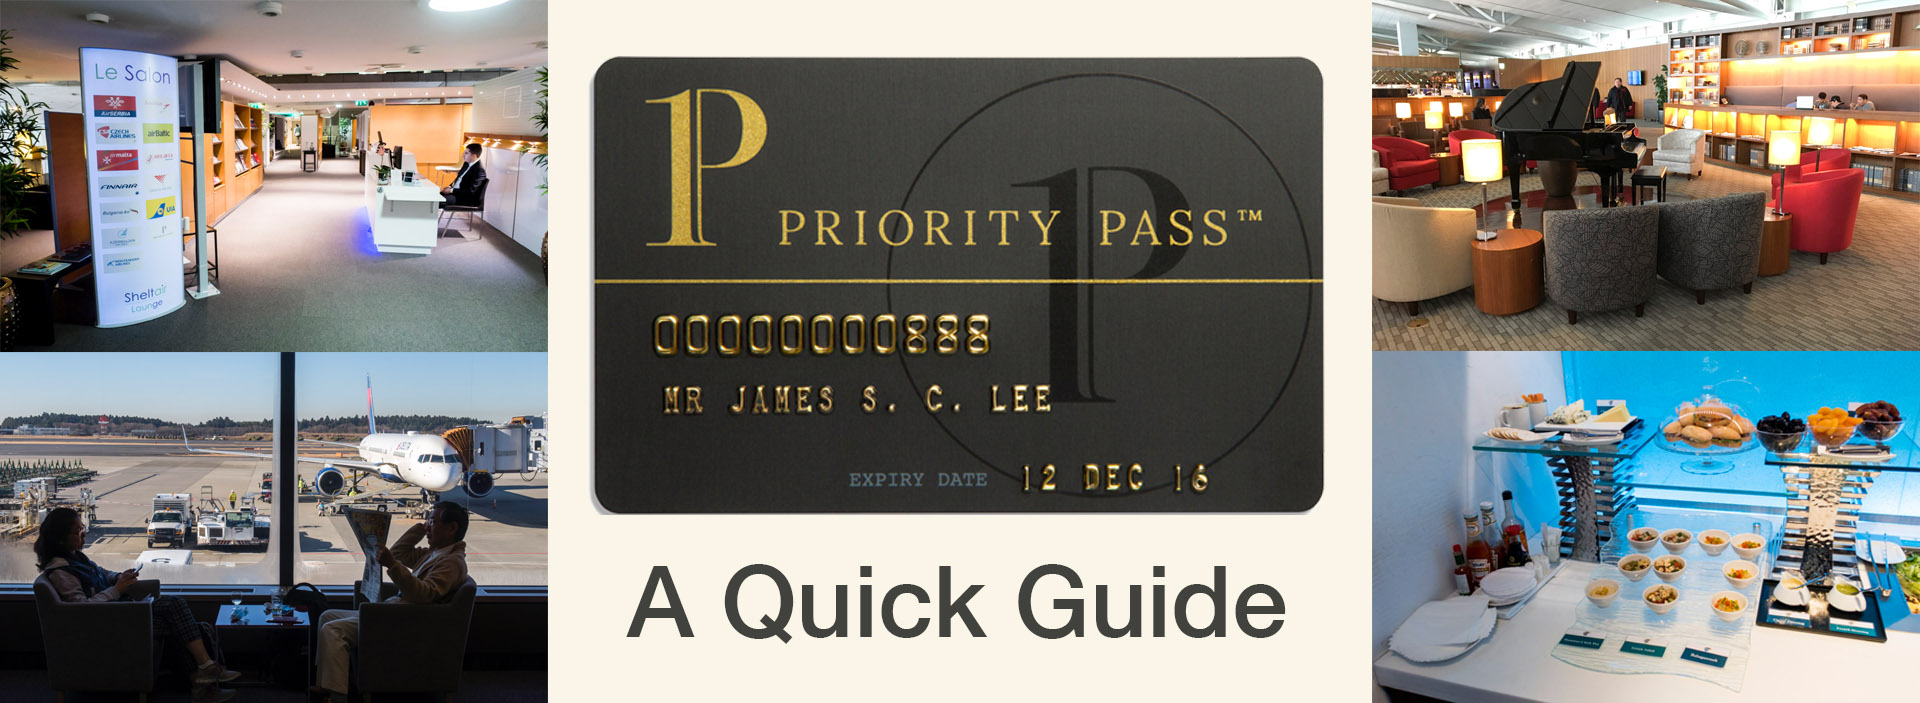 Priority Pass: A Quick Guide